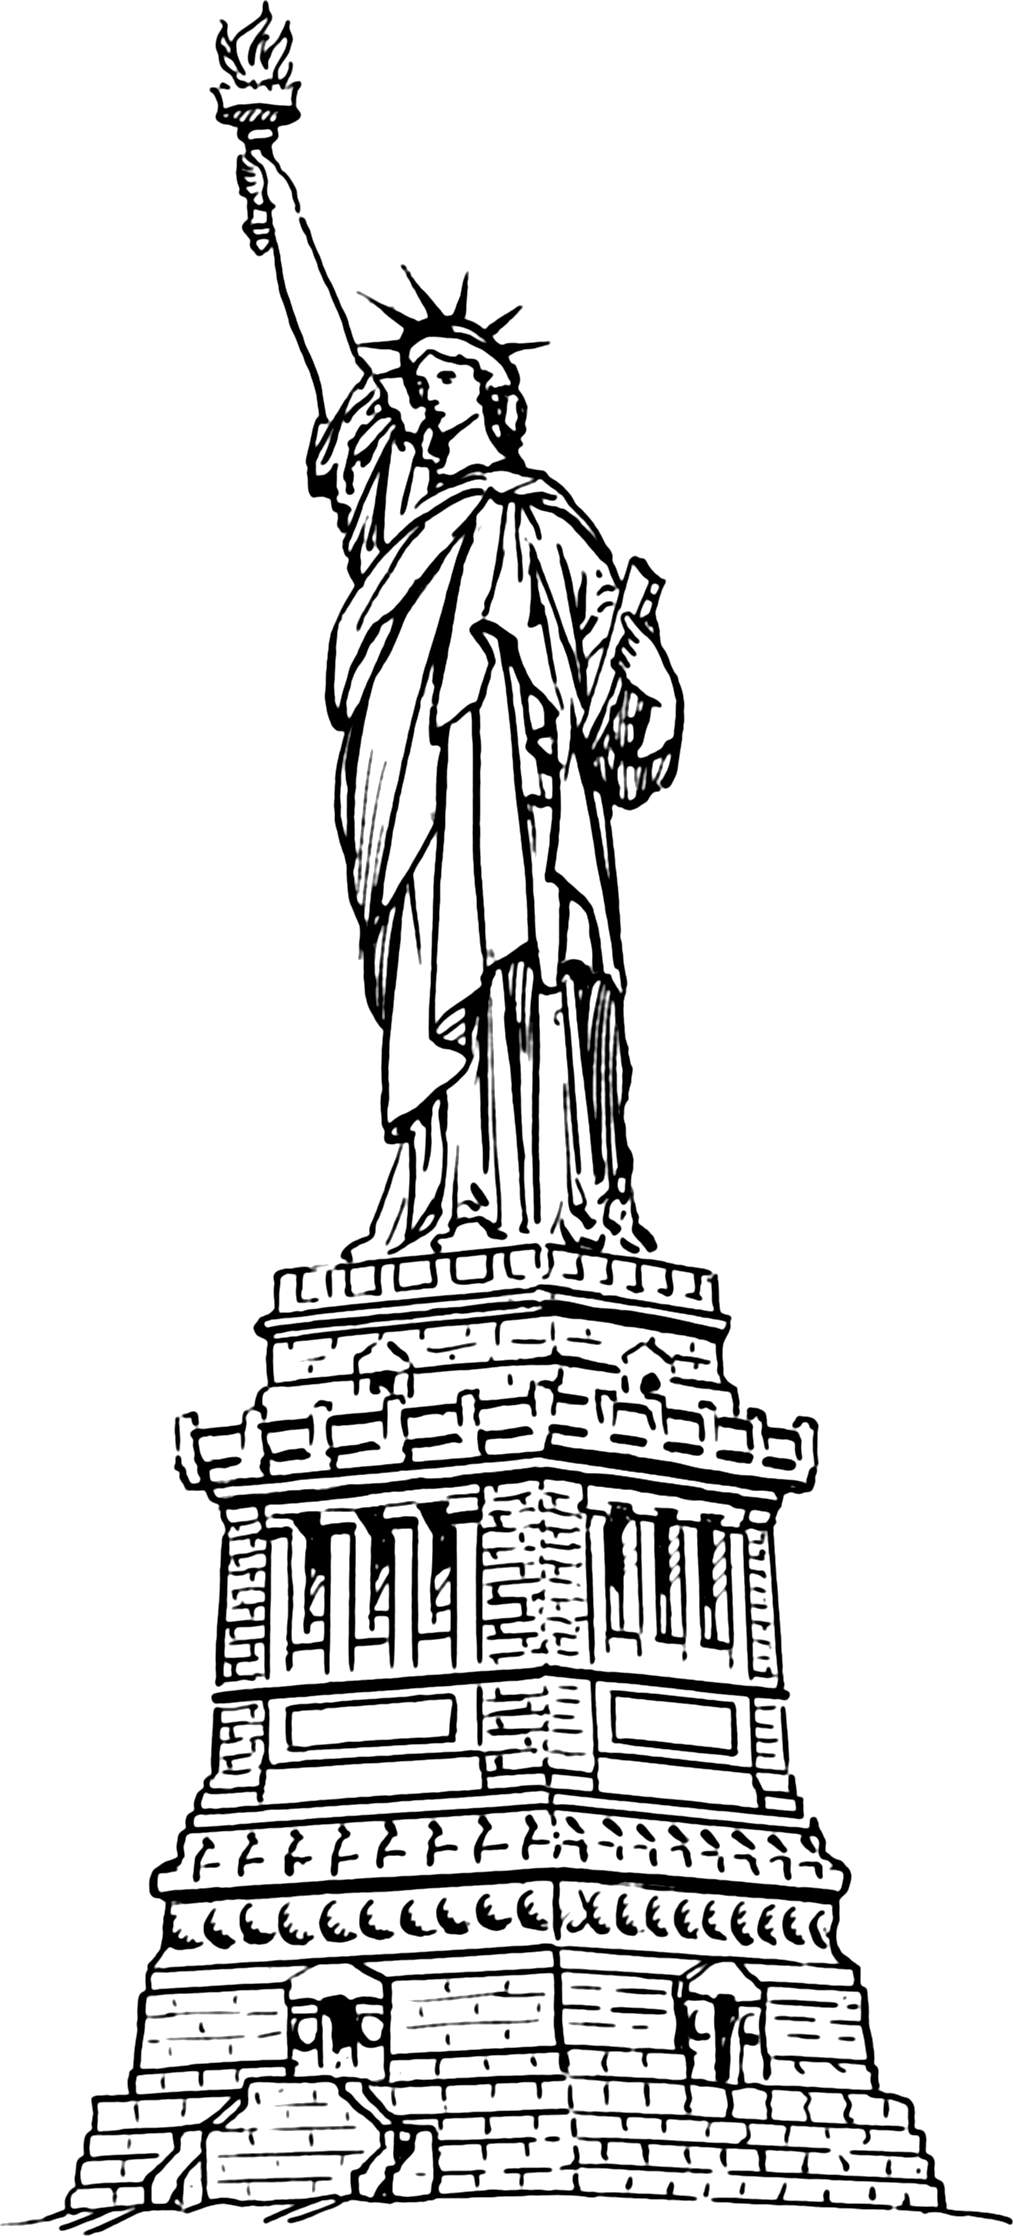 0a9028c3234545492a11c576141a8 - Statue Of Liberty Clipart